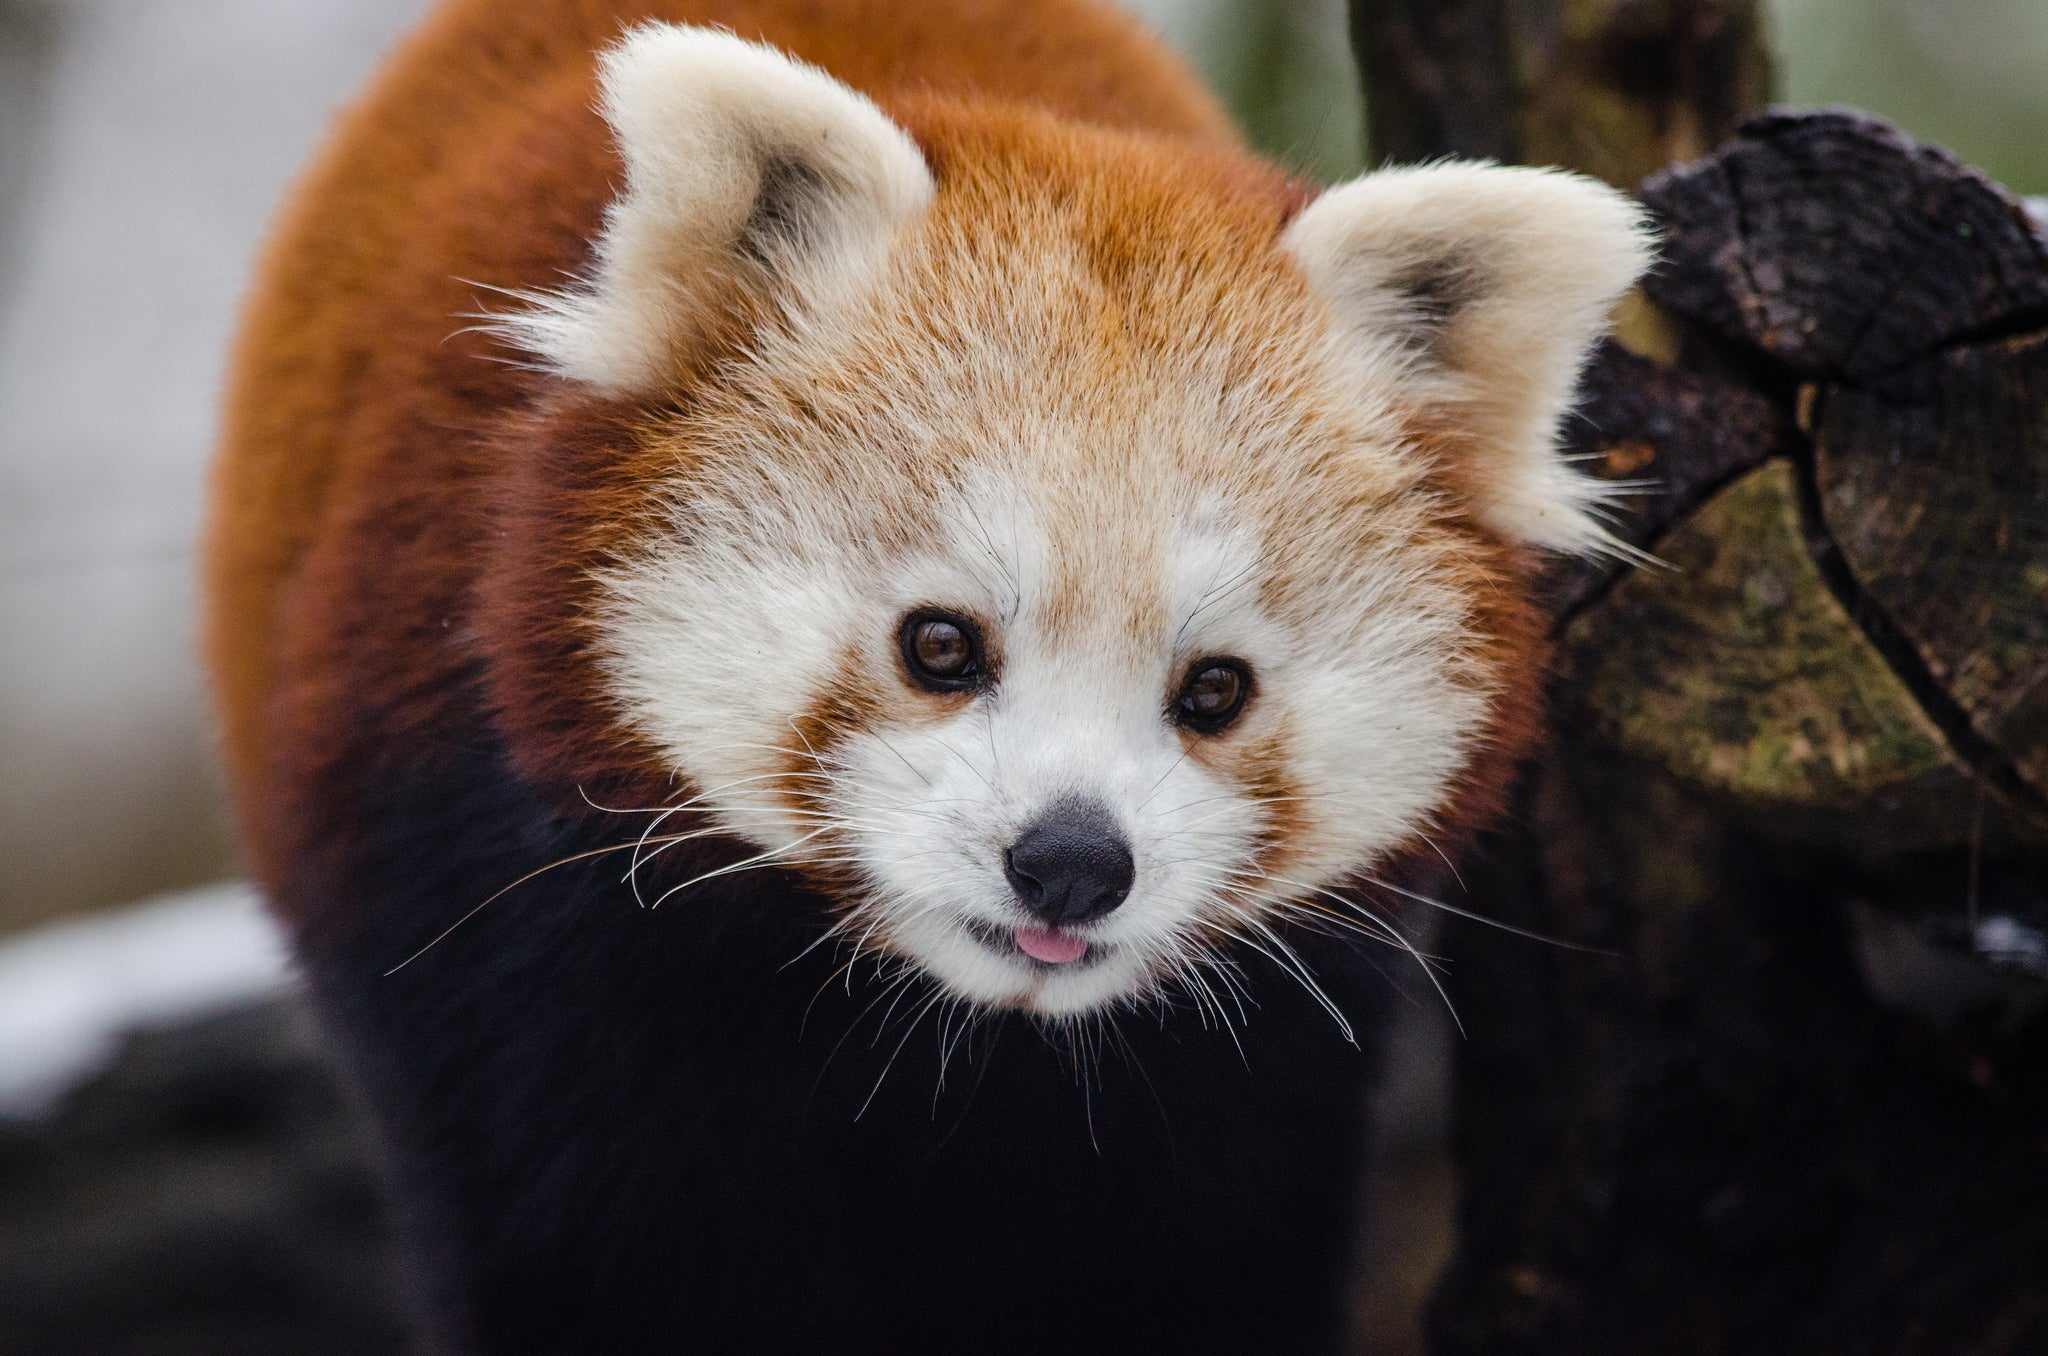 7 Things You Didn't Know About Red Pandas - Scientific